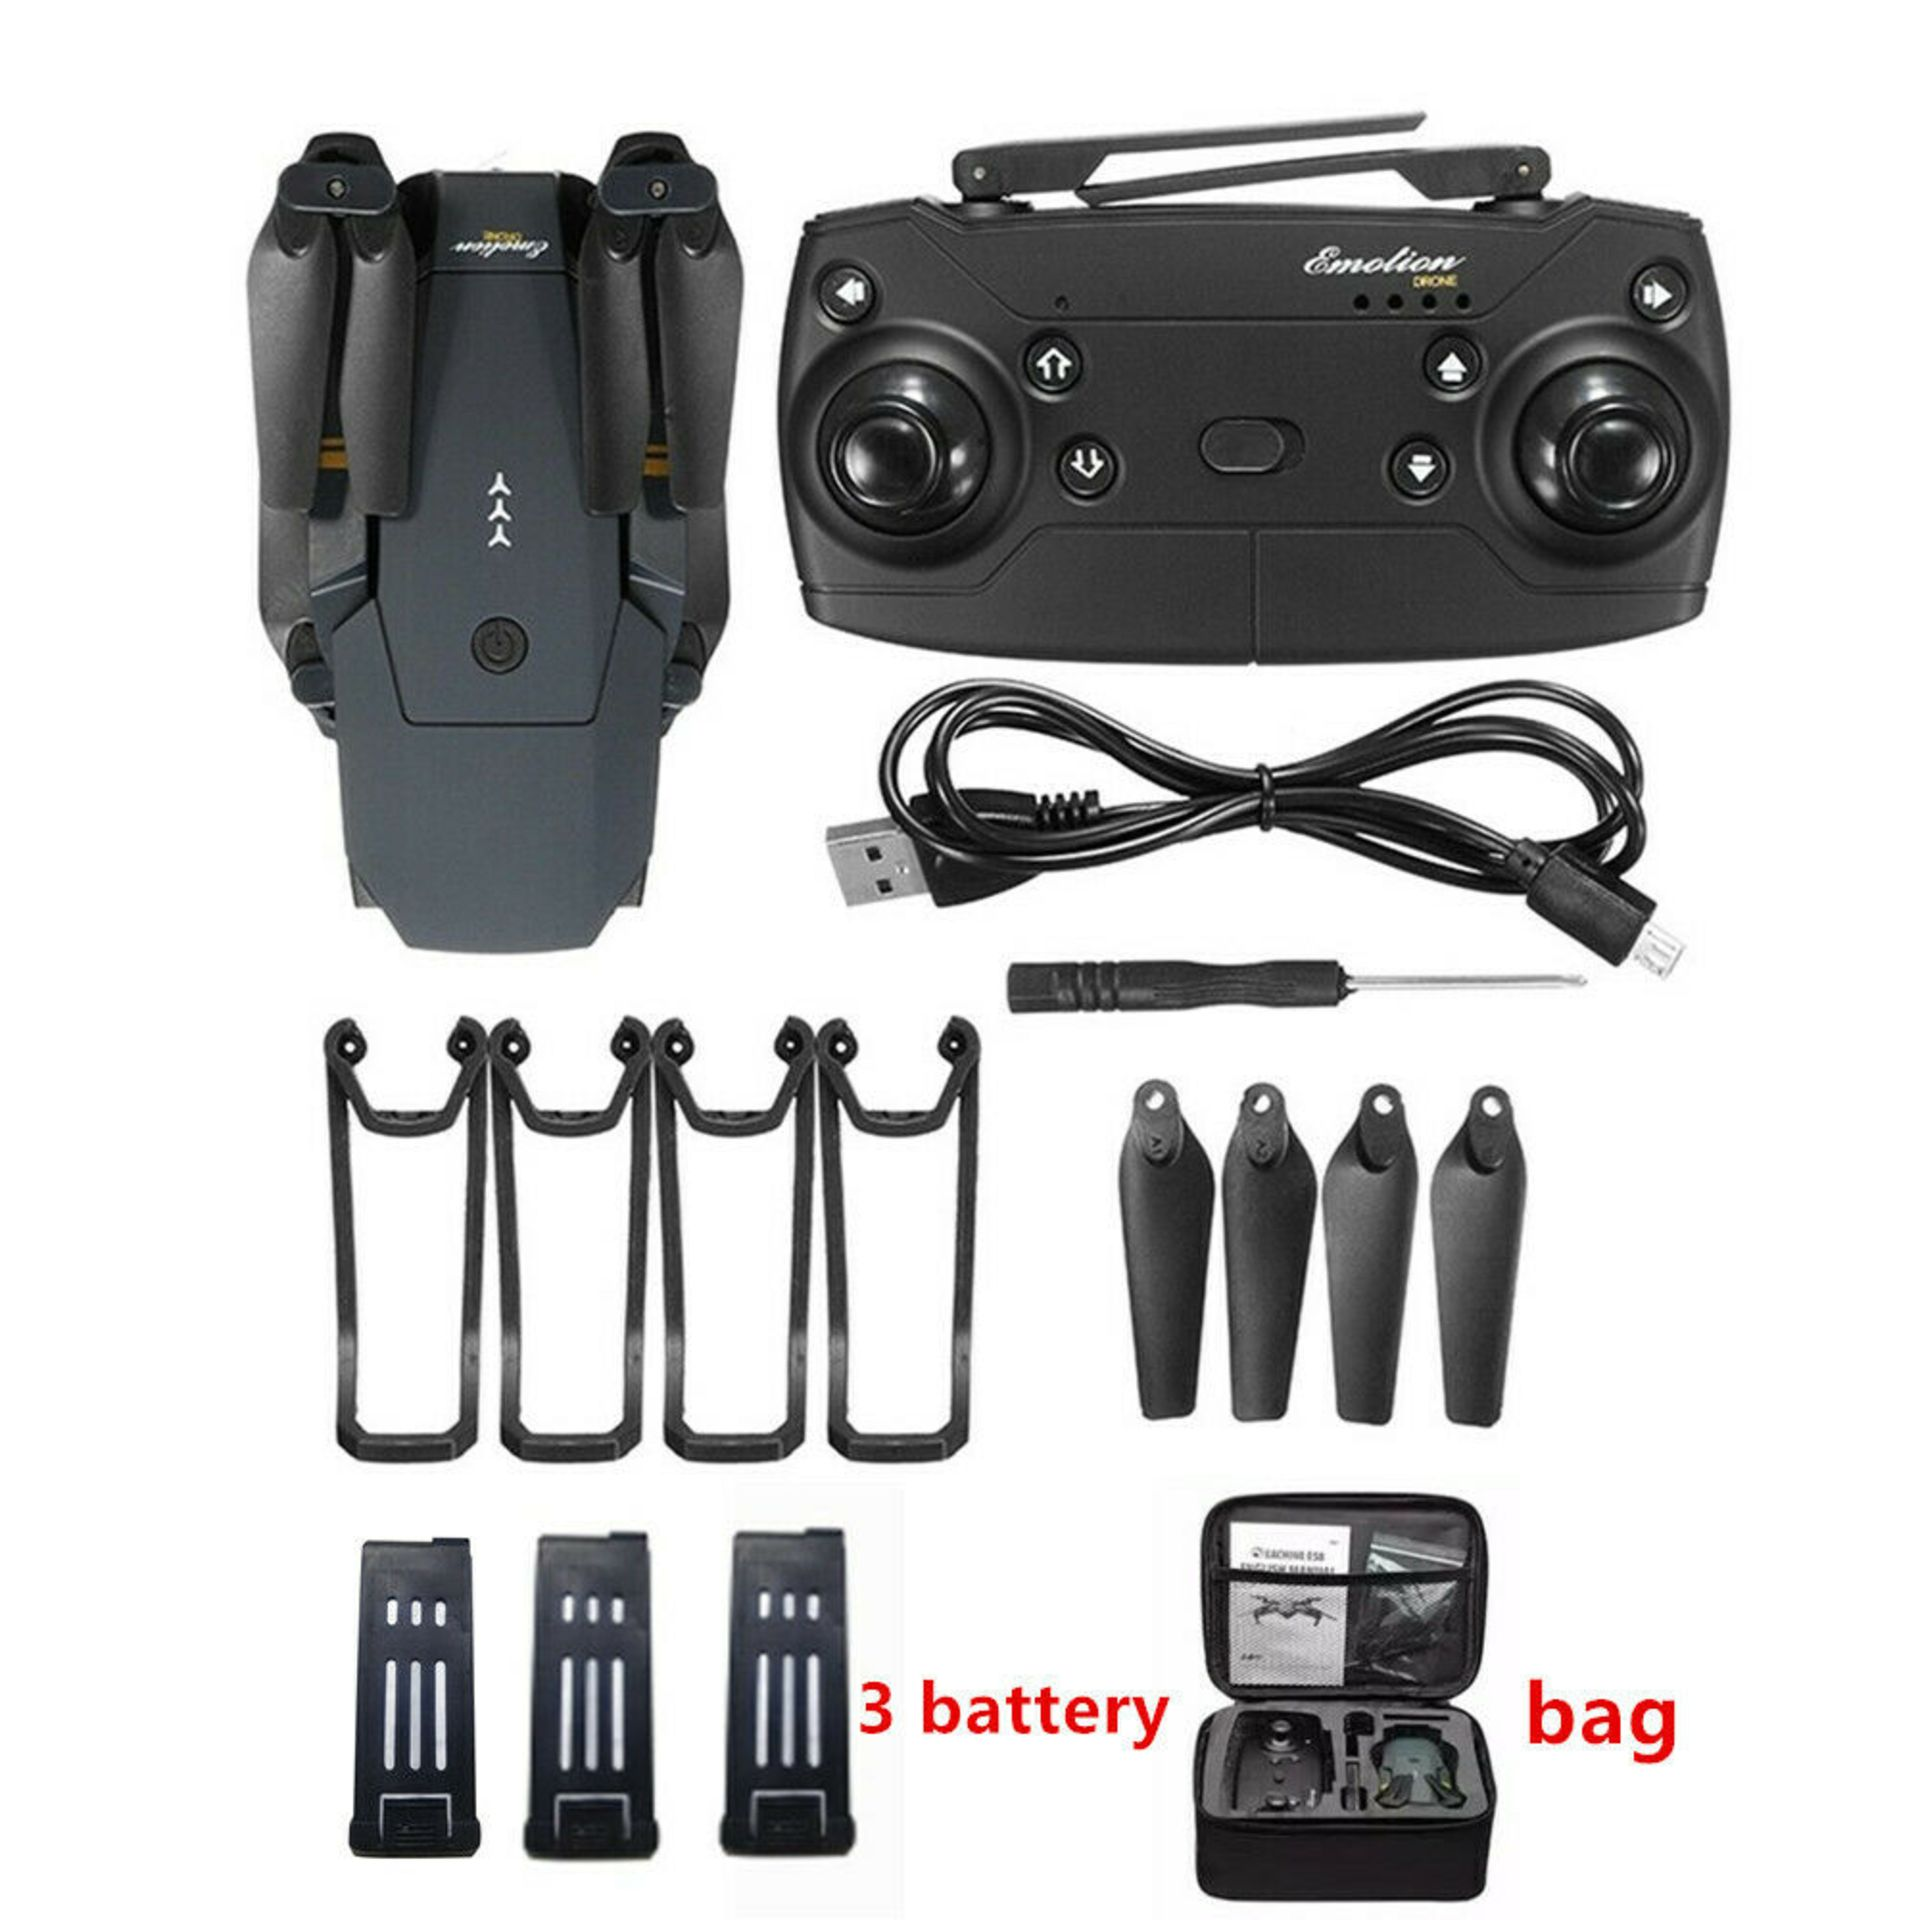 NEW & UNUSED DRONE X PRO WIFI FPV 1080P HD CAMERA FOLDABLE RC QUADCOPTER + BAG *PLUS VAT* - Image 3 of 12